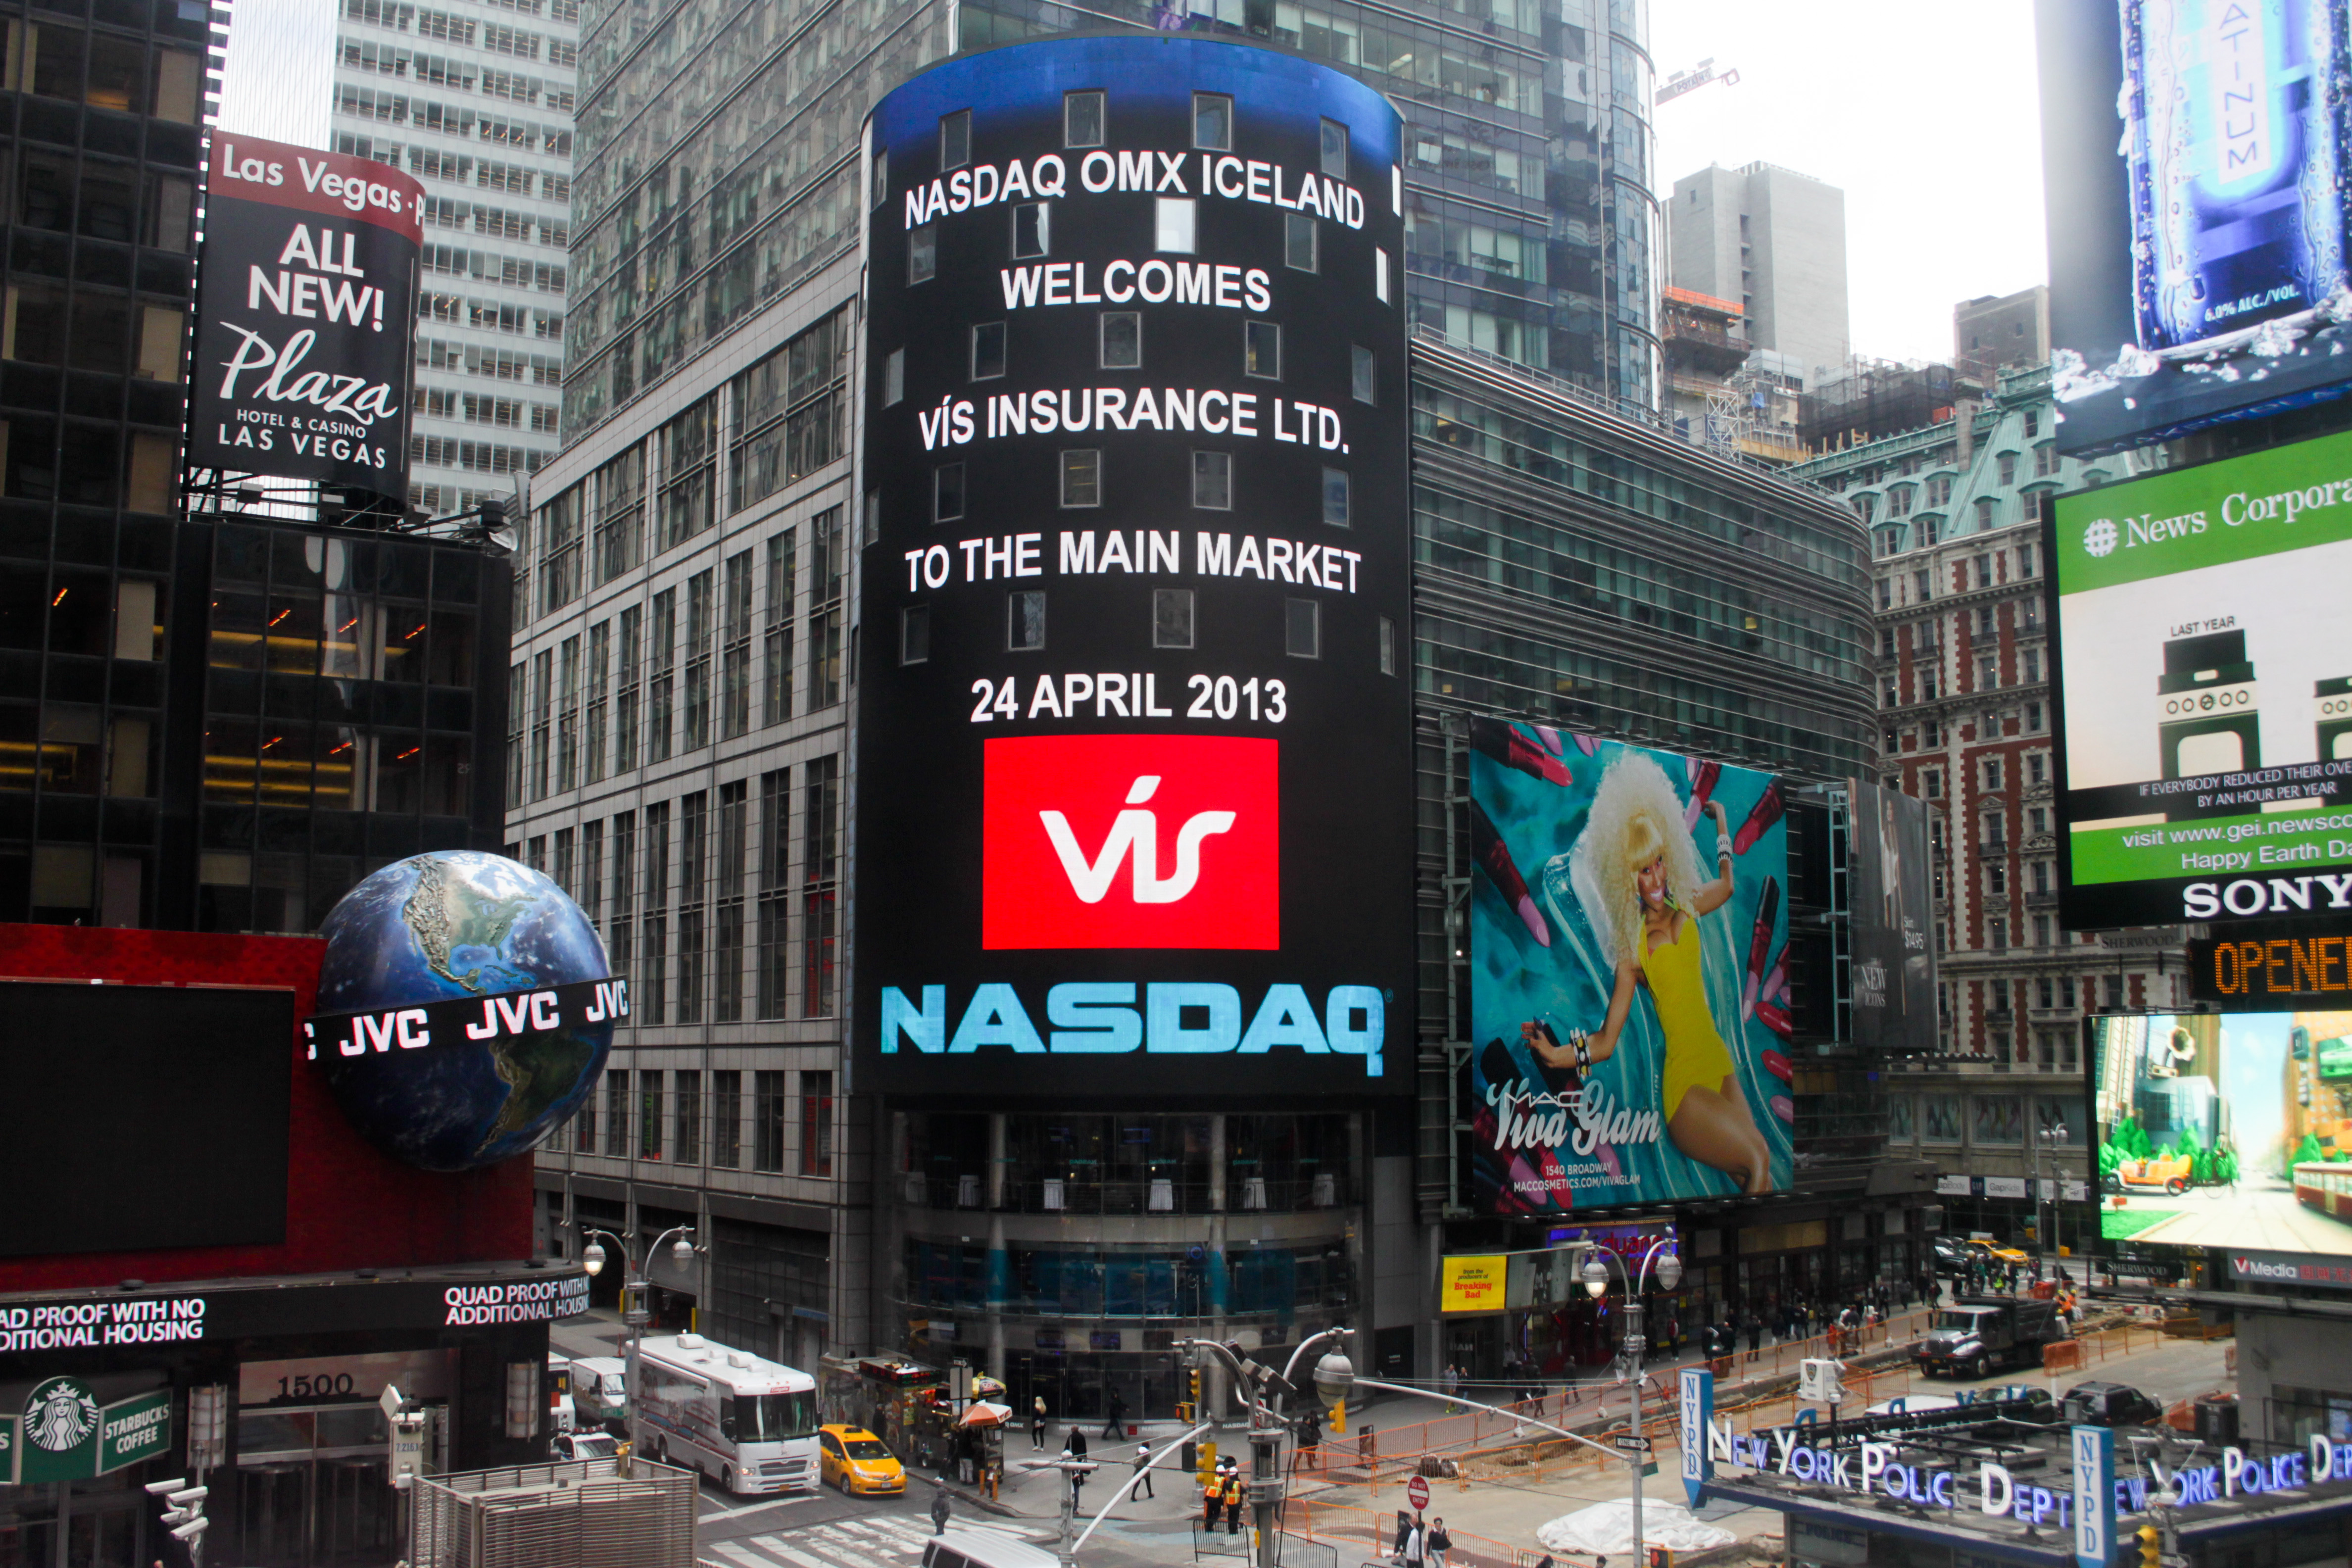 NASDAQ Blockhain Voting System Comes To Fruition One Year Later - BTC Nigeria